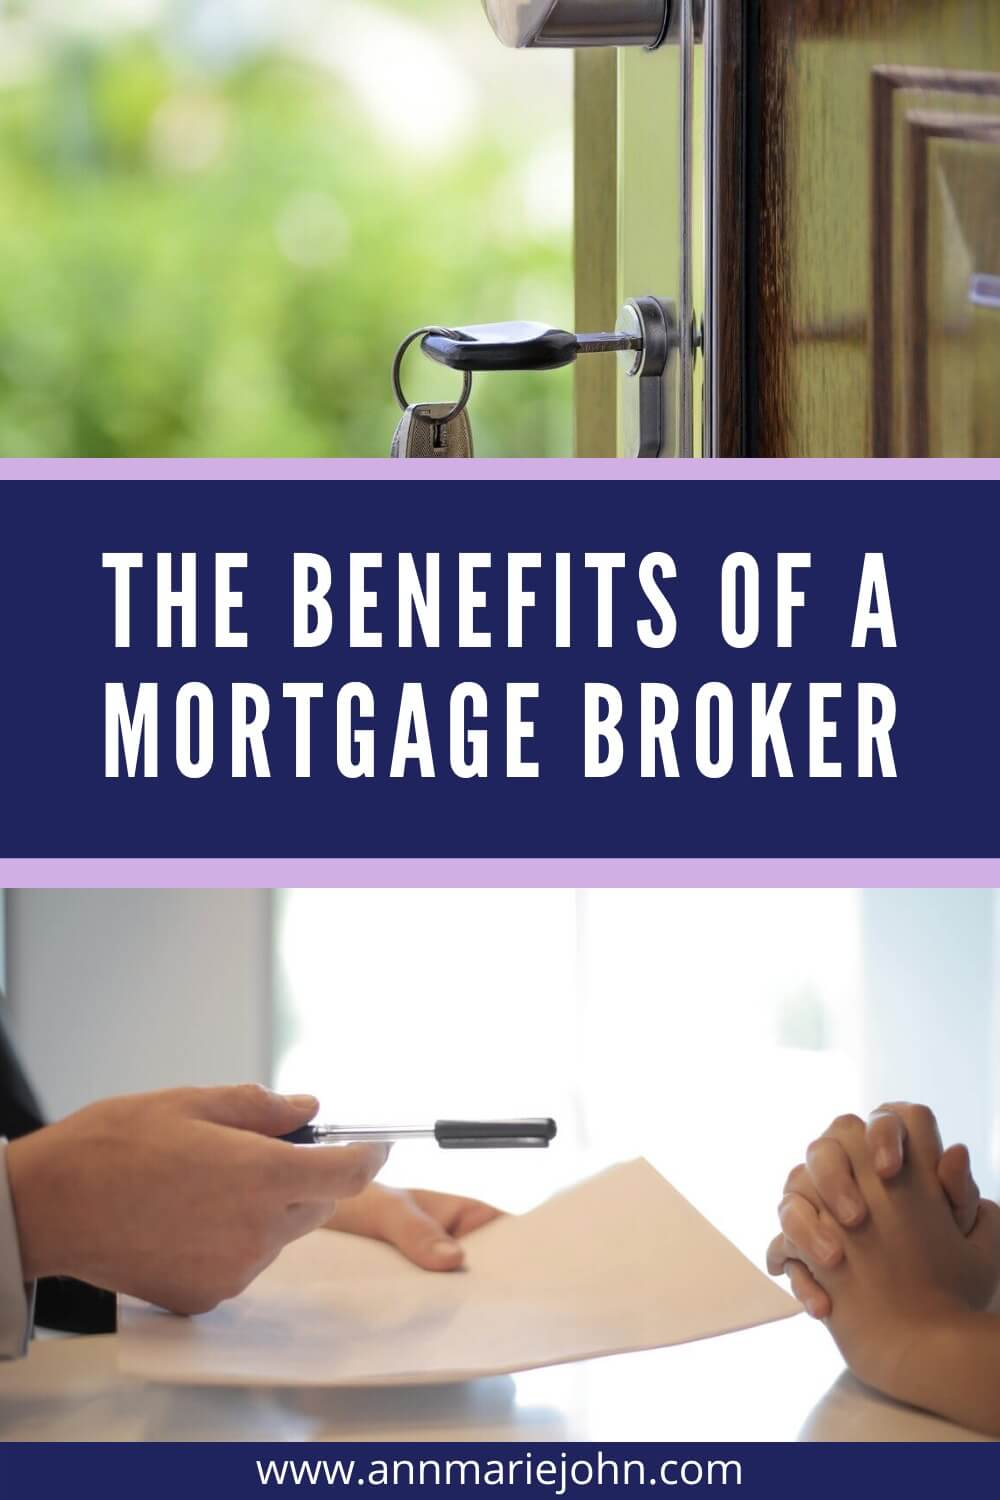 The benefits of a mortgage broker